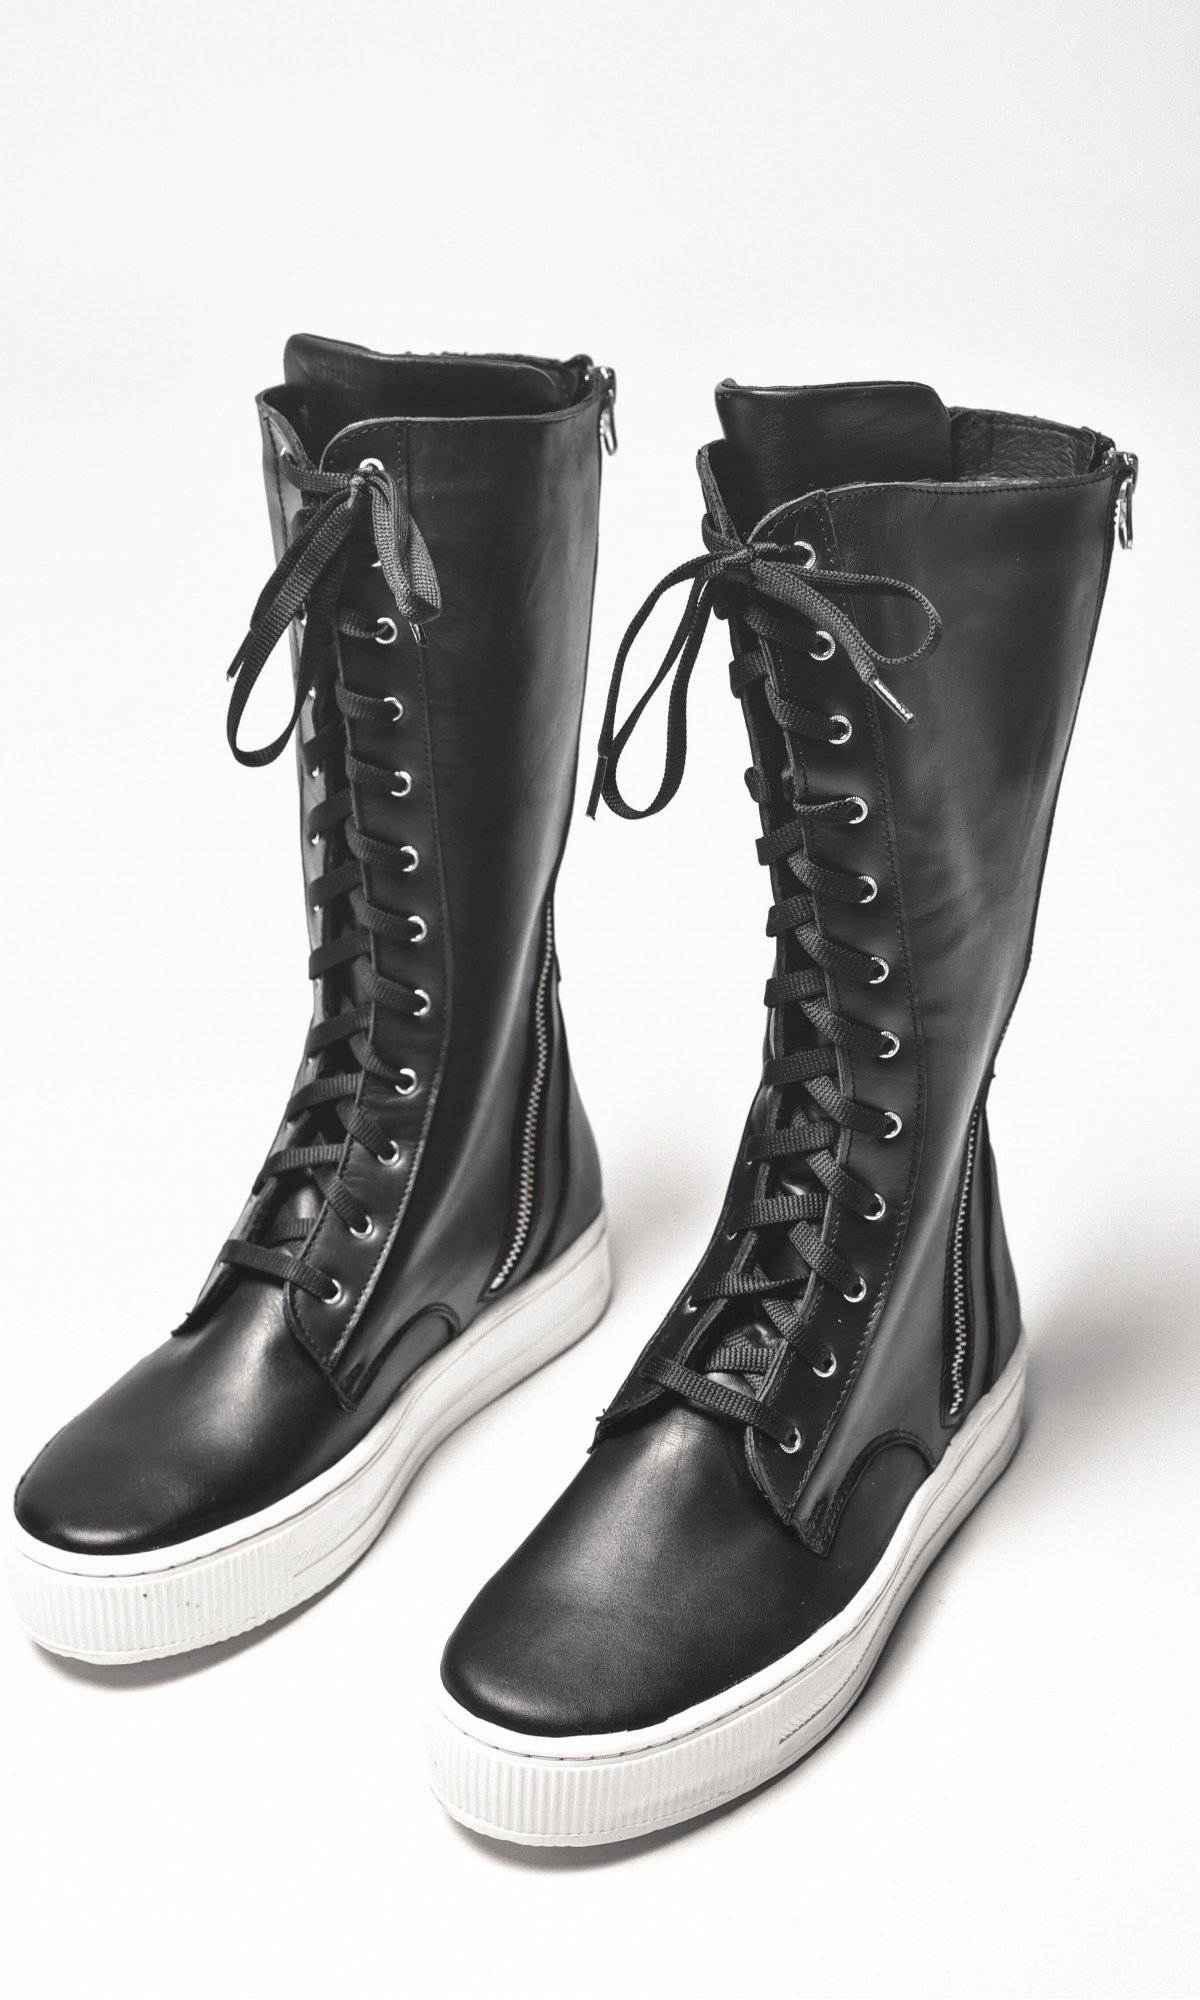 Genuine Leather Double Zipper Lace Boots A21352